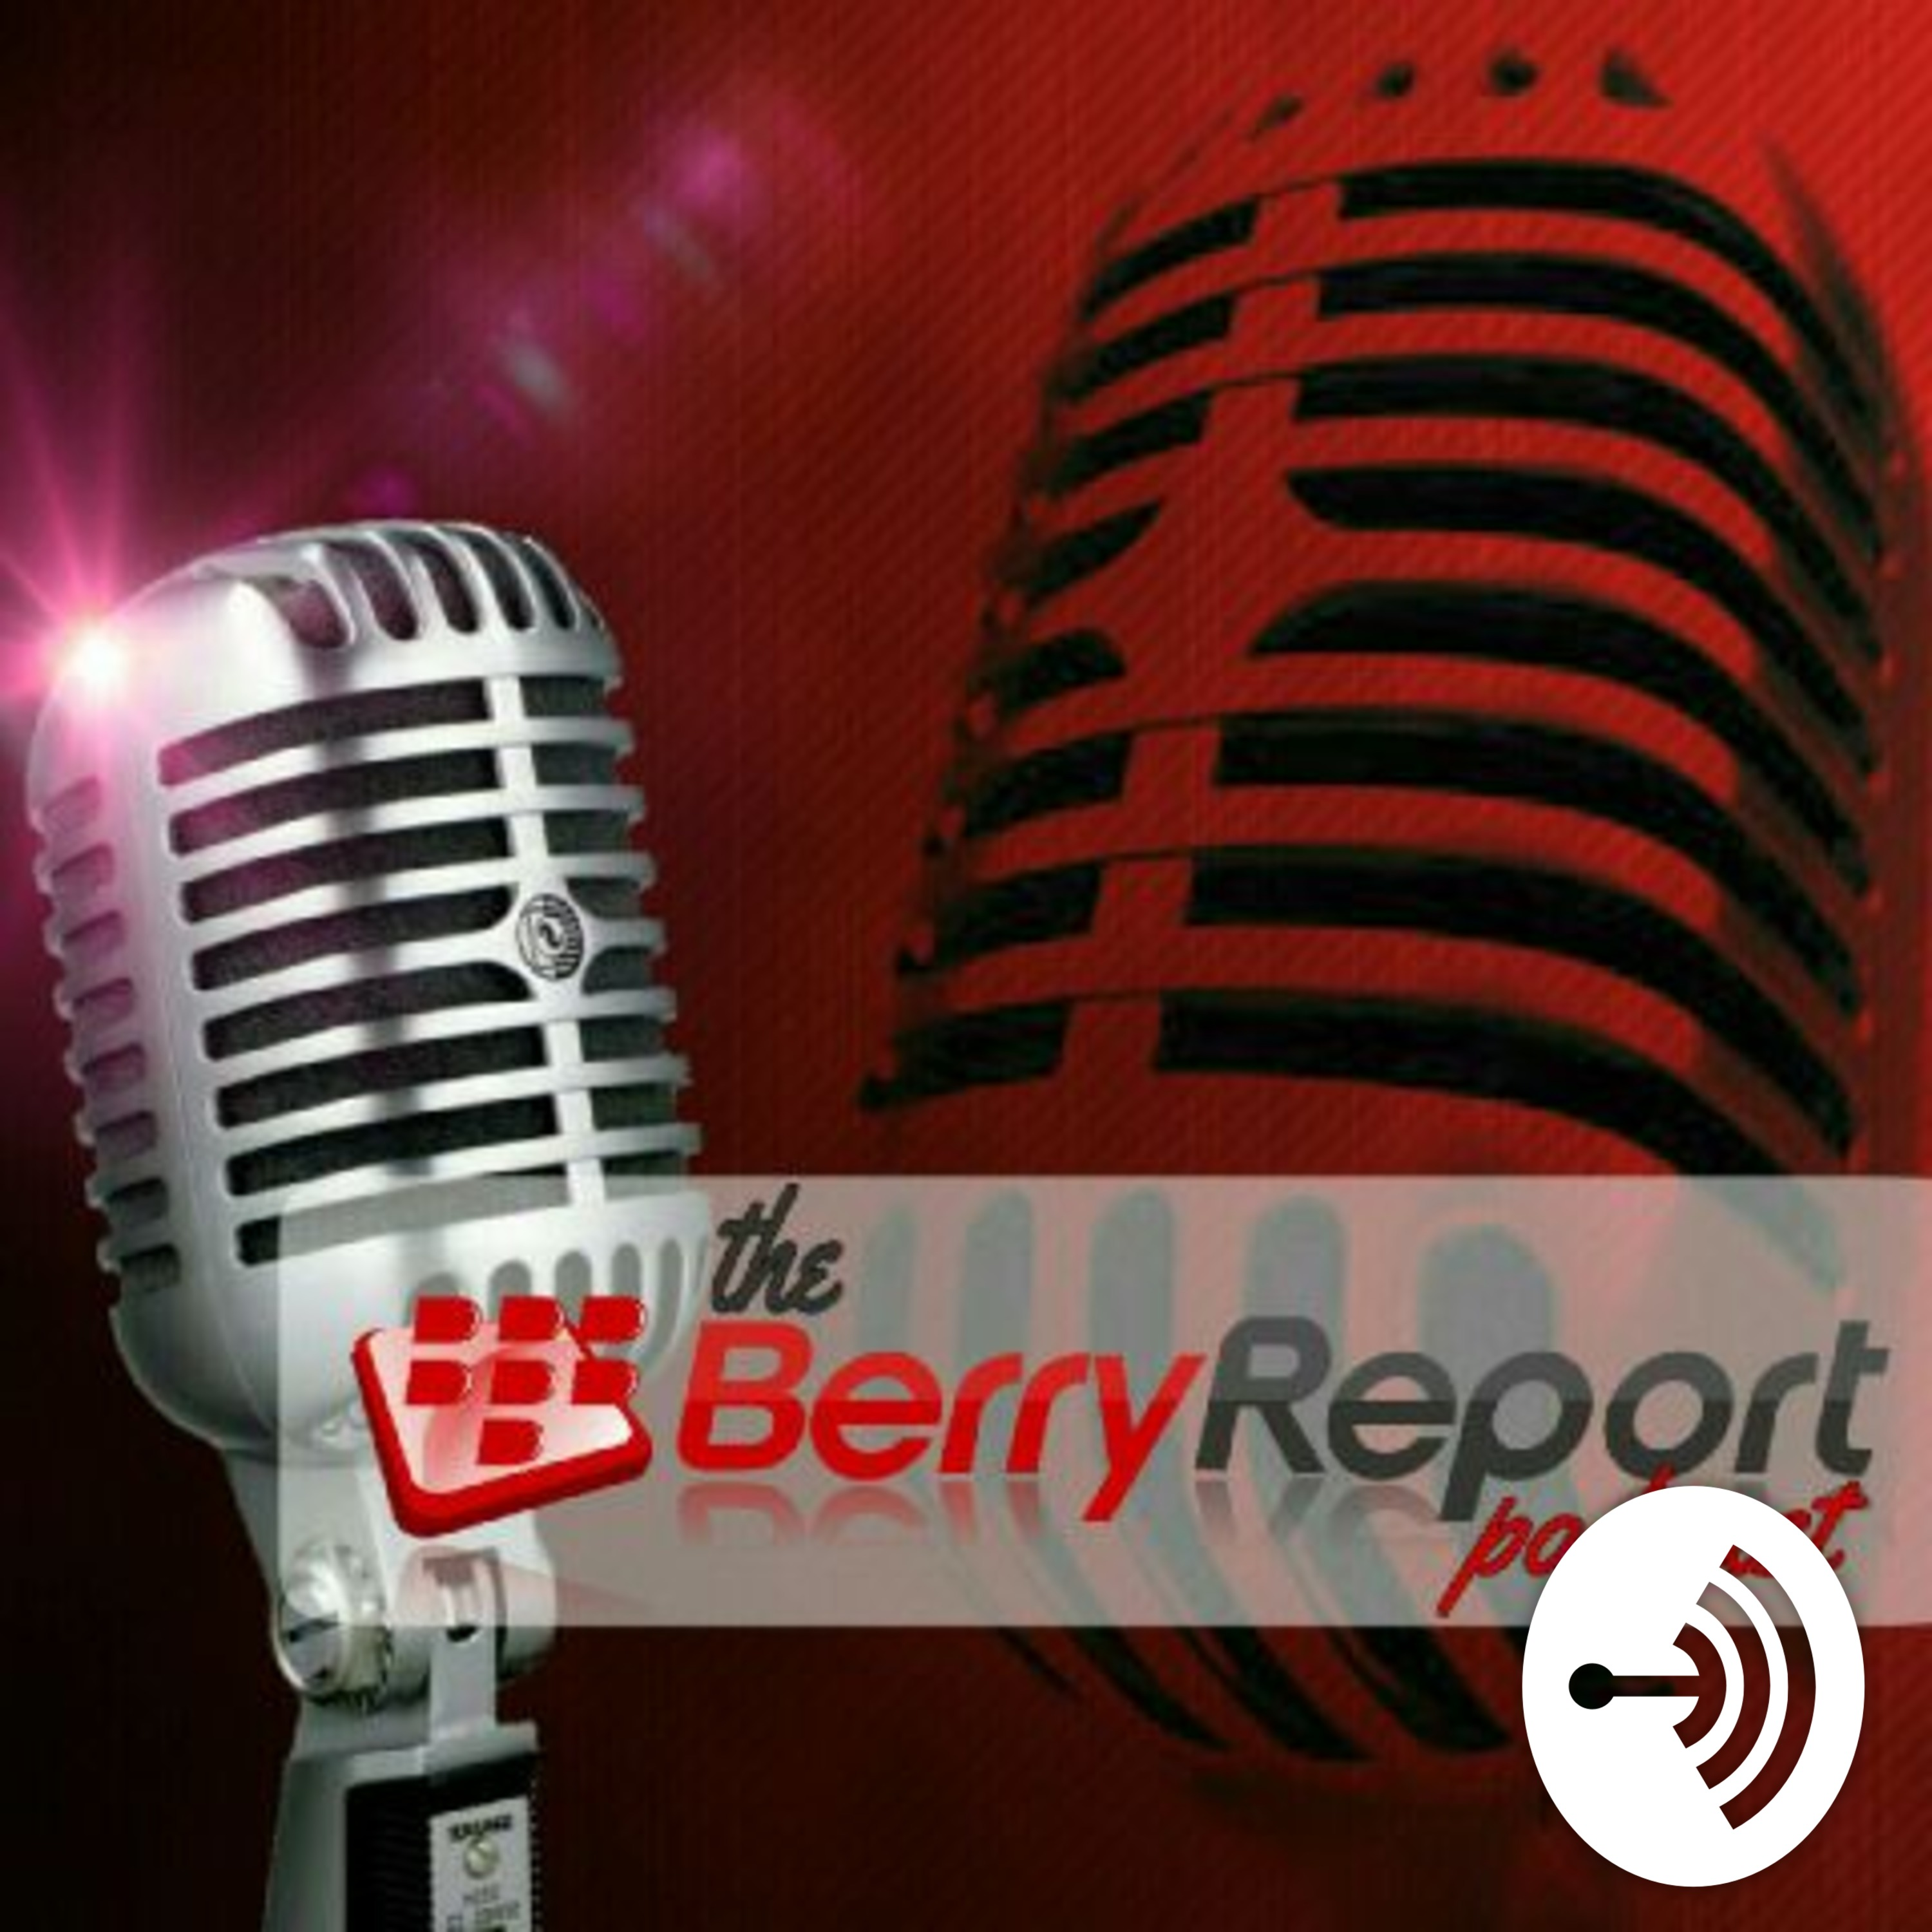 The Berry Report Podcast Episode 84- Long Live BBM!